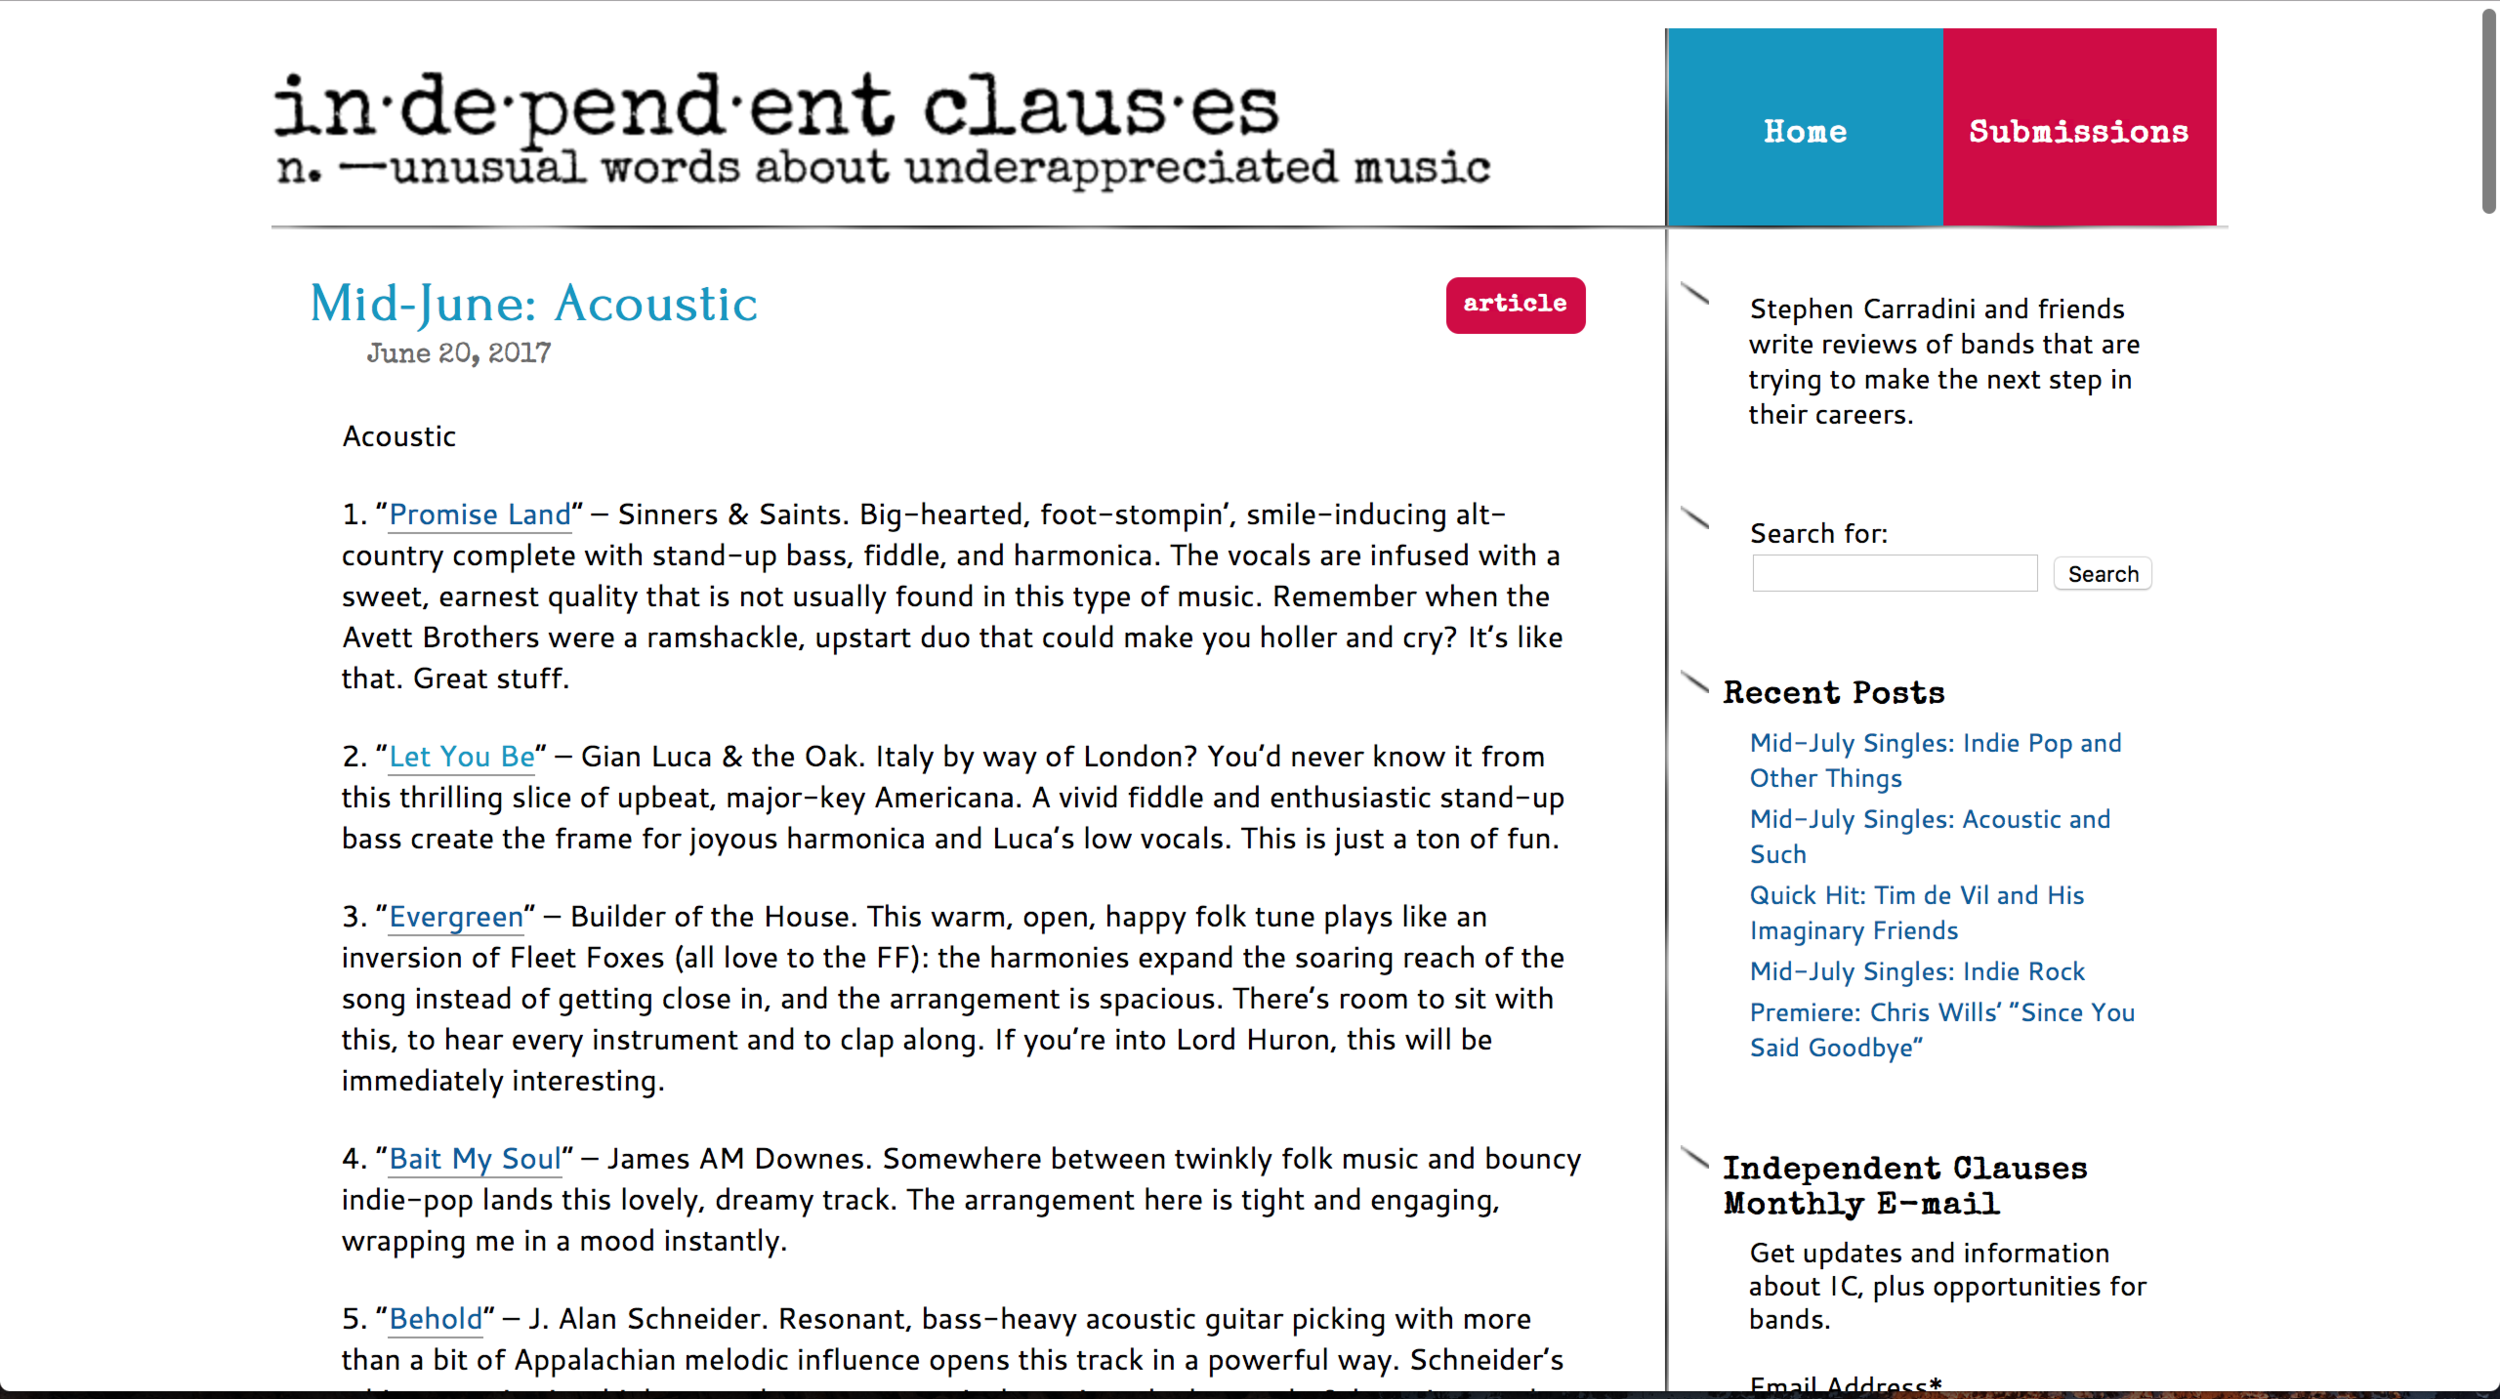 """Independent clauses   """"A vivid fiddle and enthusiastic stand-up bass create the frame for joyous harmonica and Luca's low vocals. This is just a ton of fun.""""    by Stephen Carradini - June 2017"""